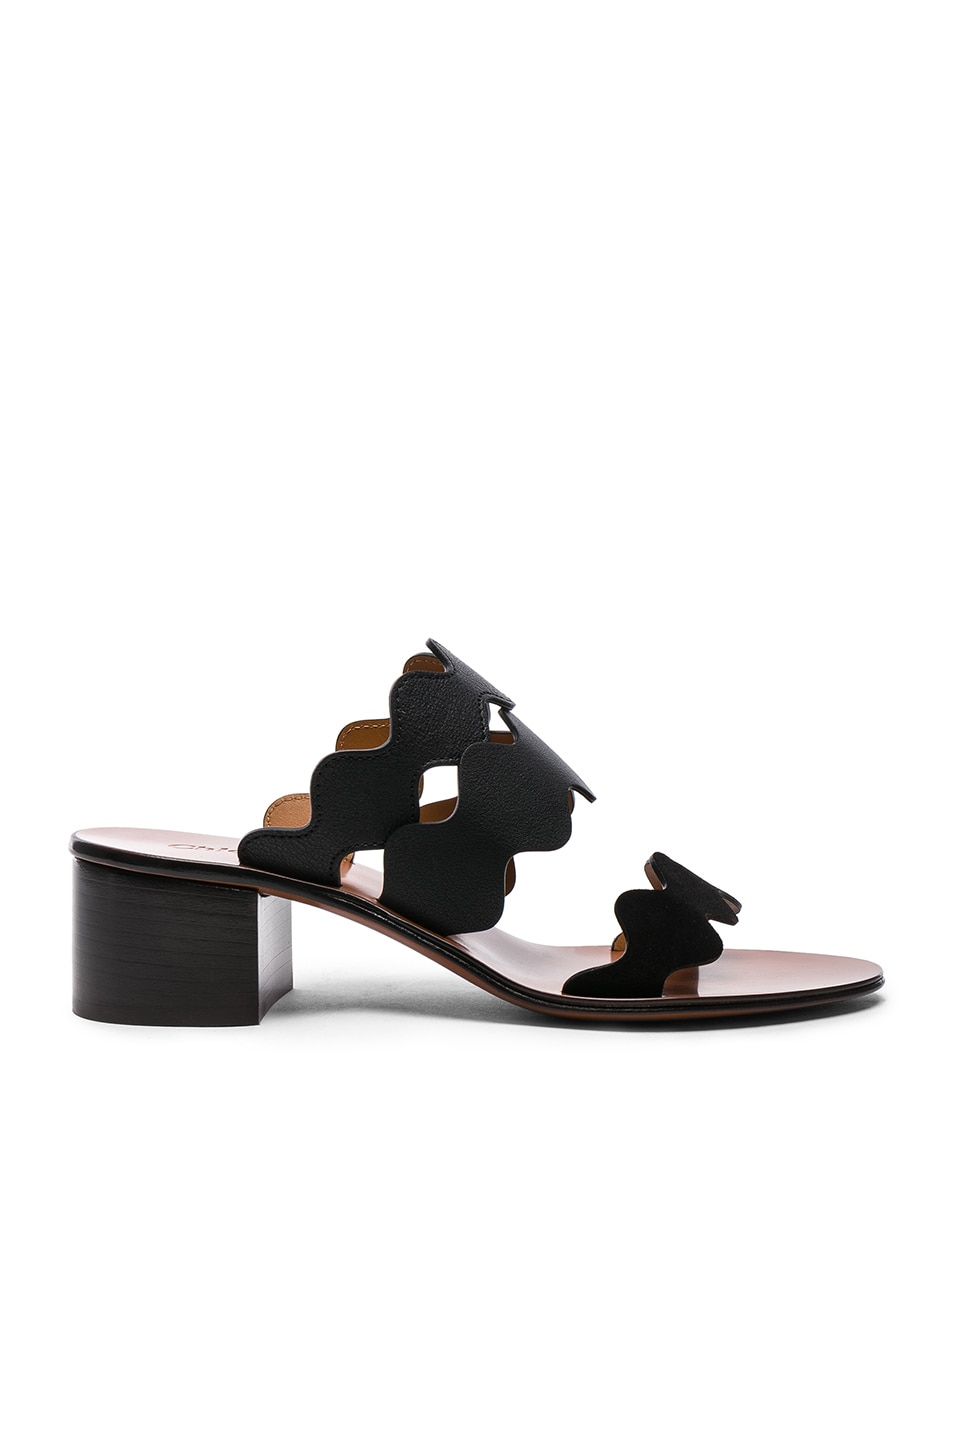 Image 1 of Chloe Lauren Leather & Suede Sandals in Black